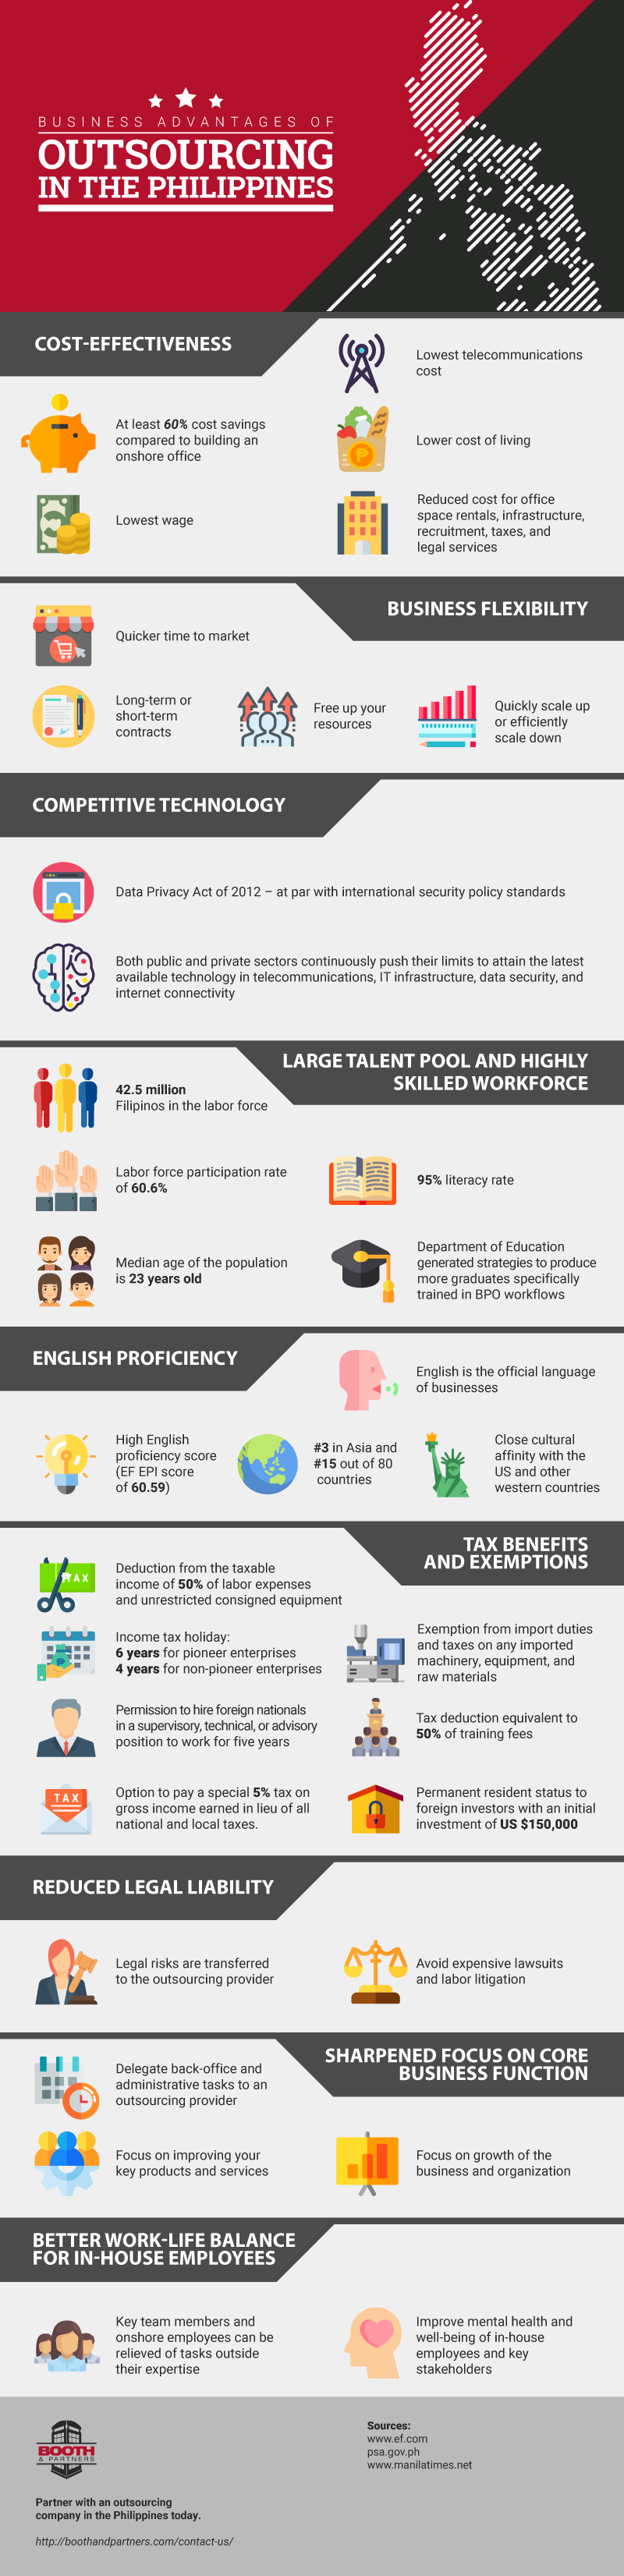 Business Advantages of Outsourcing in the Philippines #infographic